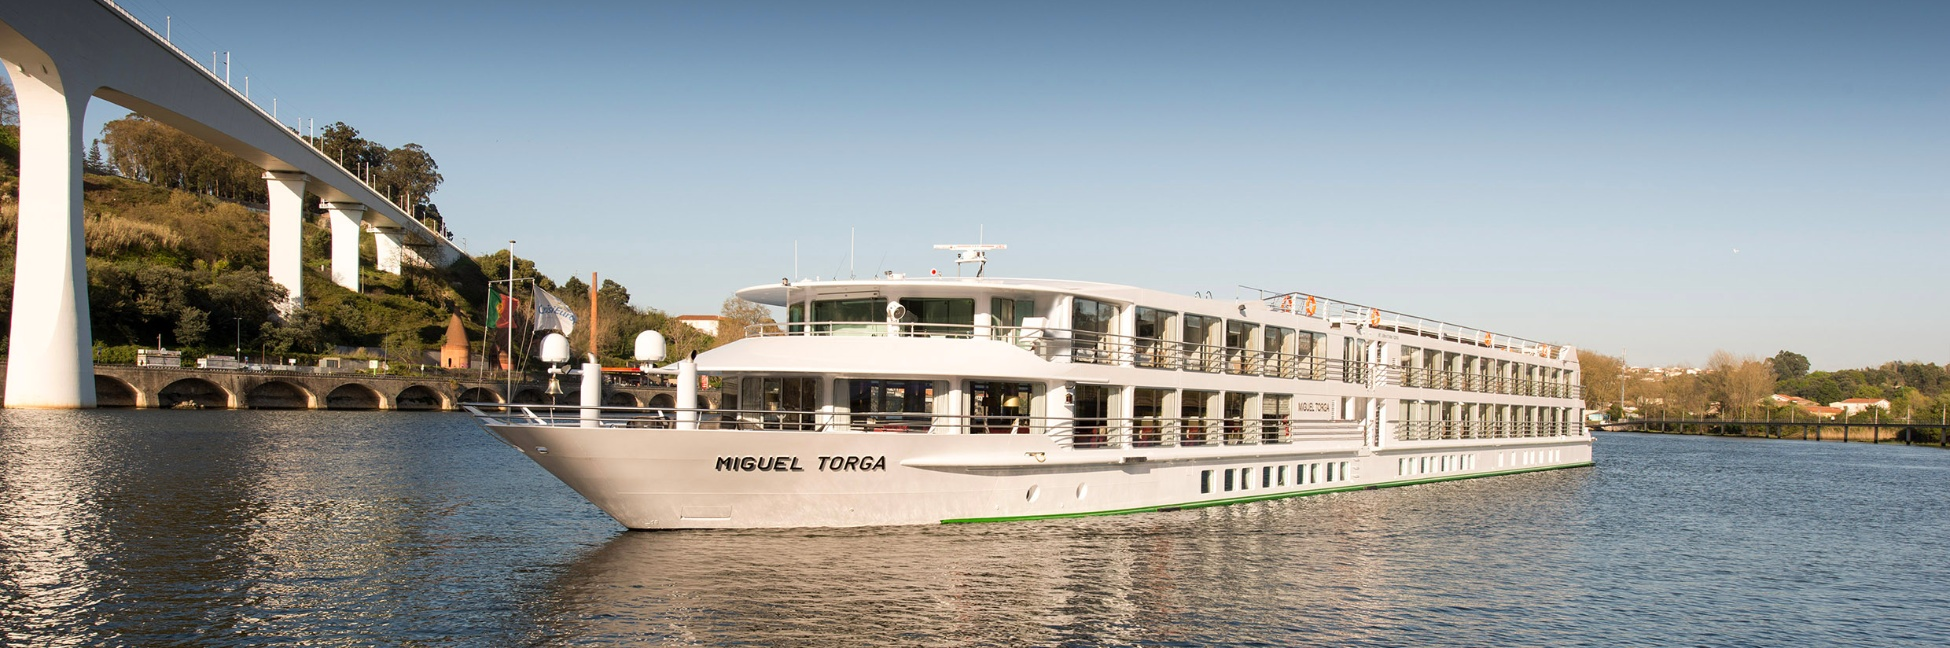 The MS Miguel Torga sailing on the Douro